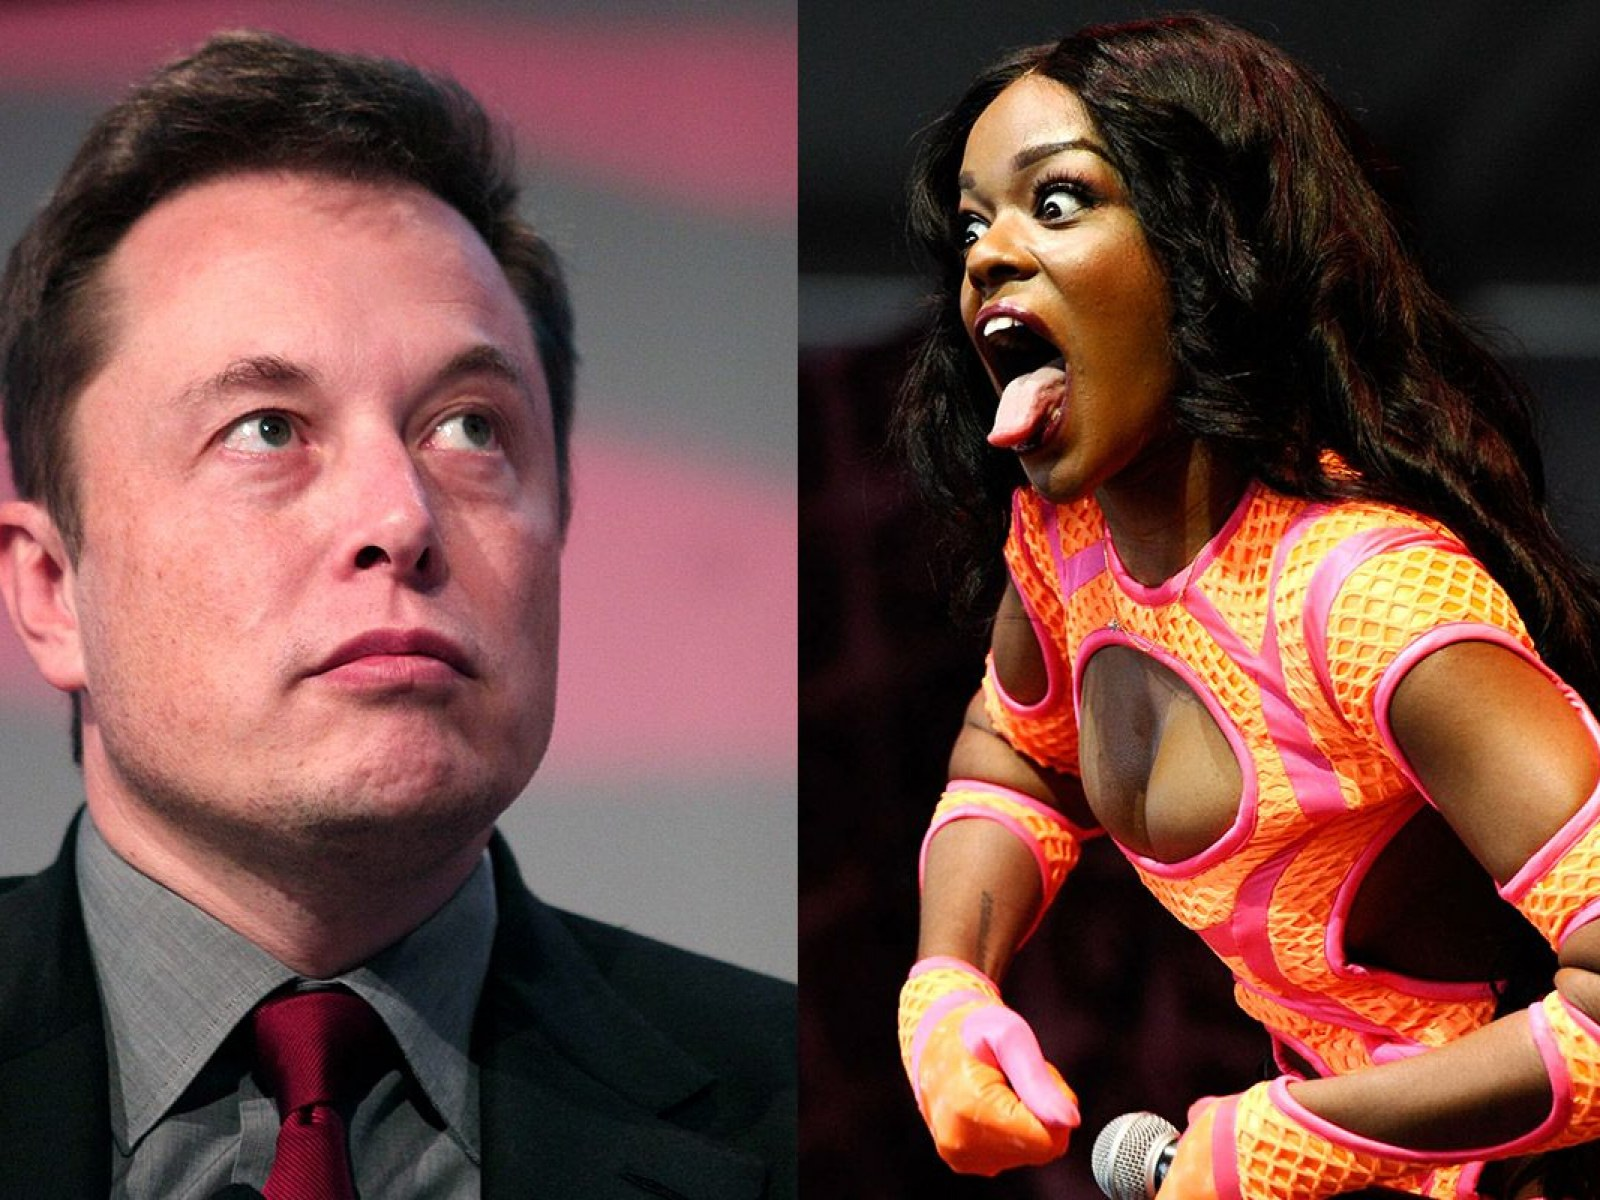 Elon Musk 'Never Even Met' Azealia Banks, Who Accused Him of Taking Acid  and 'Scrounging for Investors'